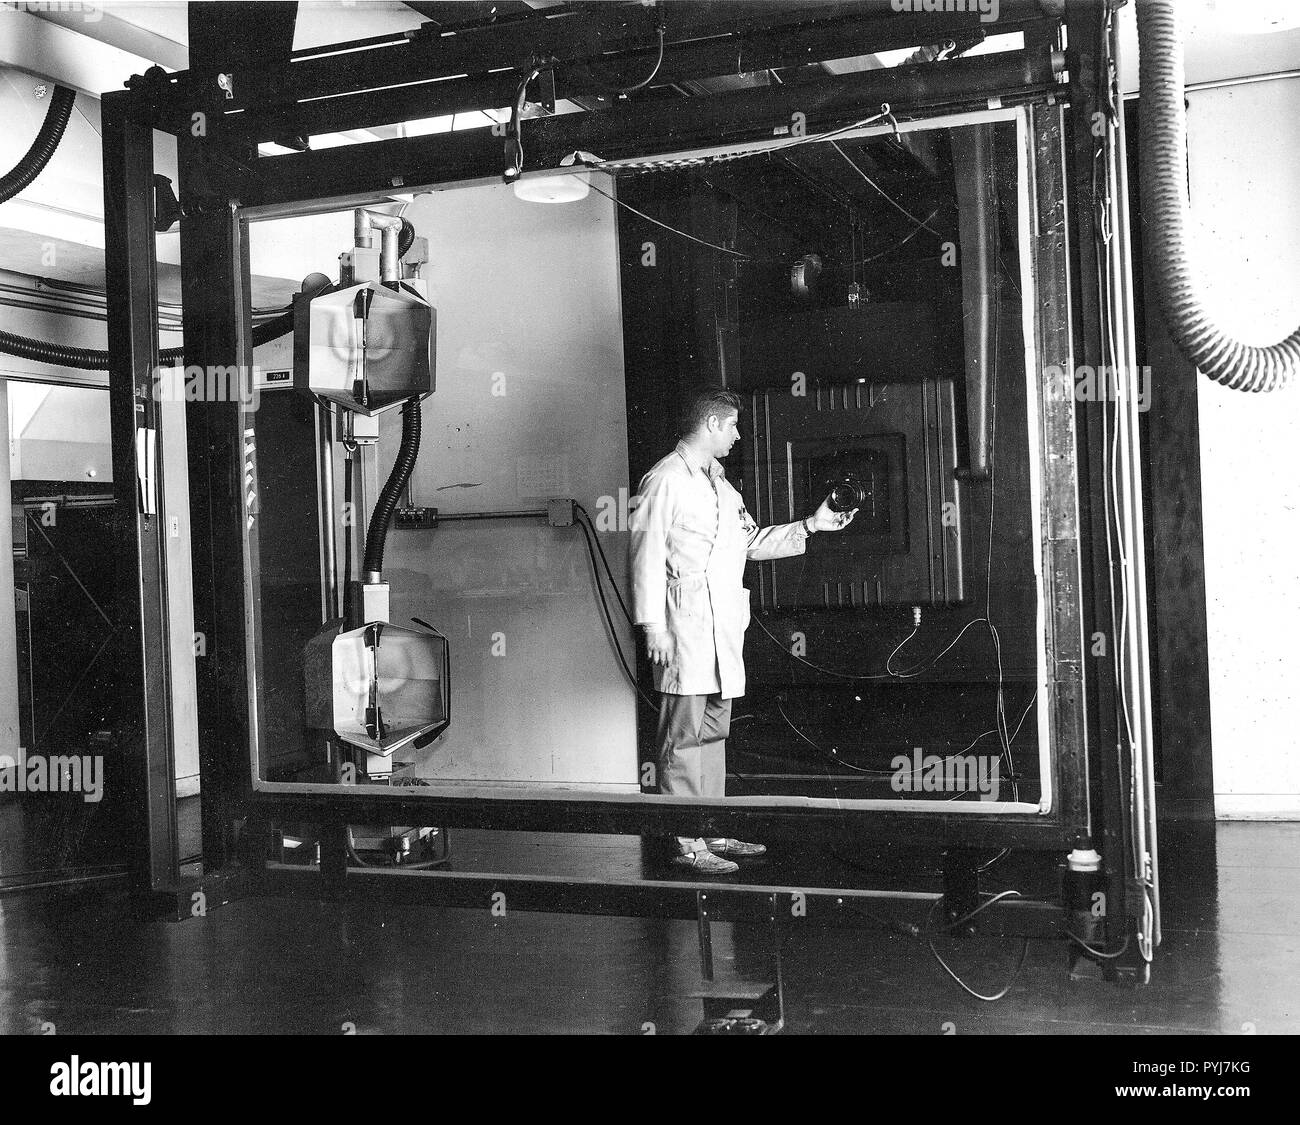 Jay Prendergast adjusts the lens on a Robertson 48-inch, 4.5 ton camera. Installed in 1959, the camera was used for precise scale transformation of mapping separates and composites. This photo was taken in Menlo Park, CA in 1965. - Stock Image